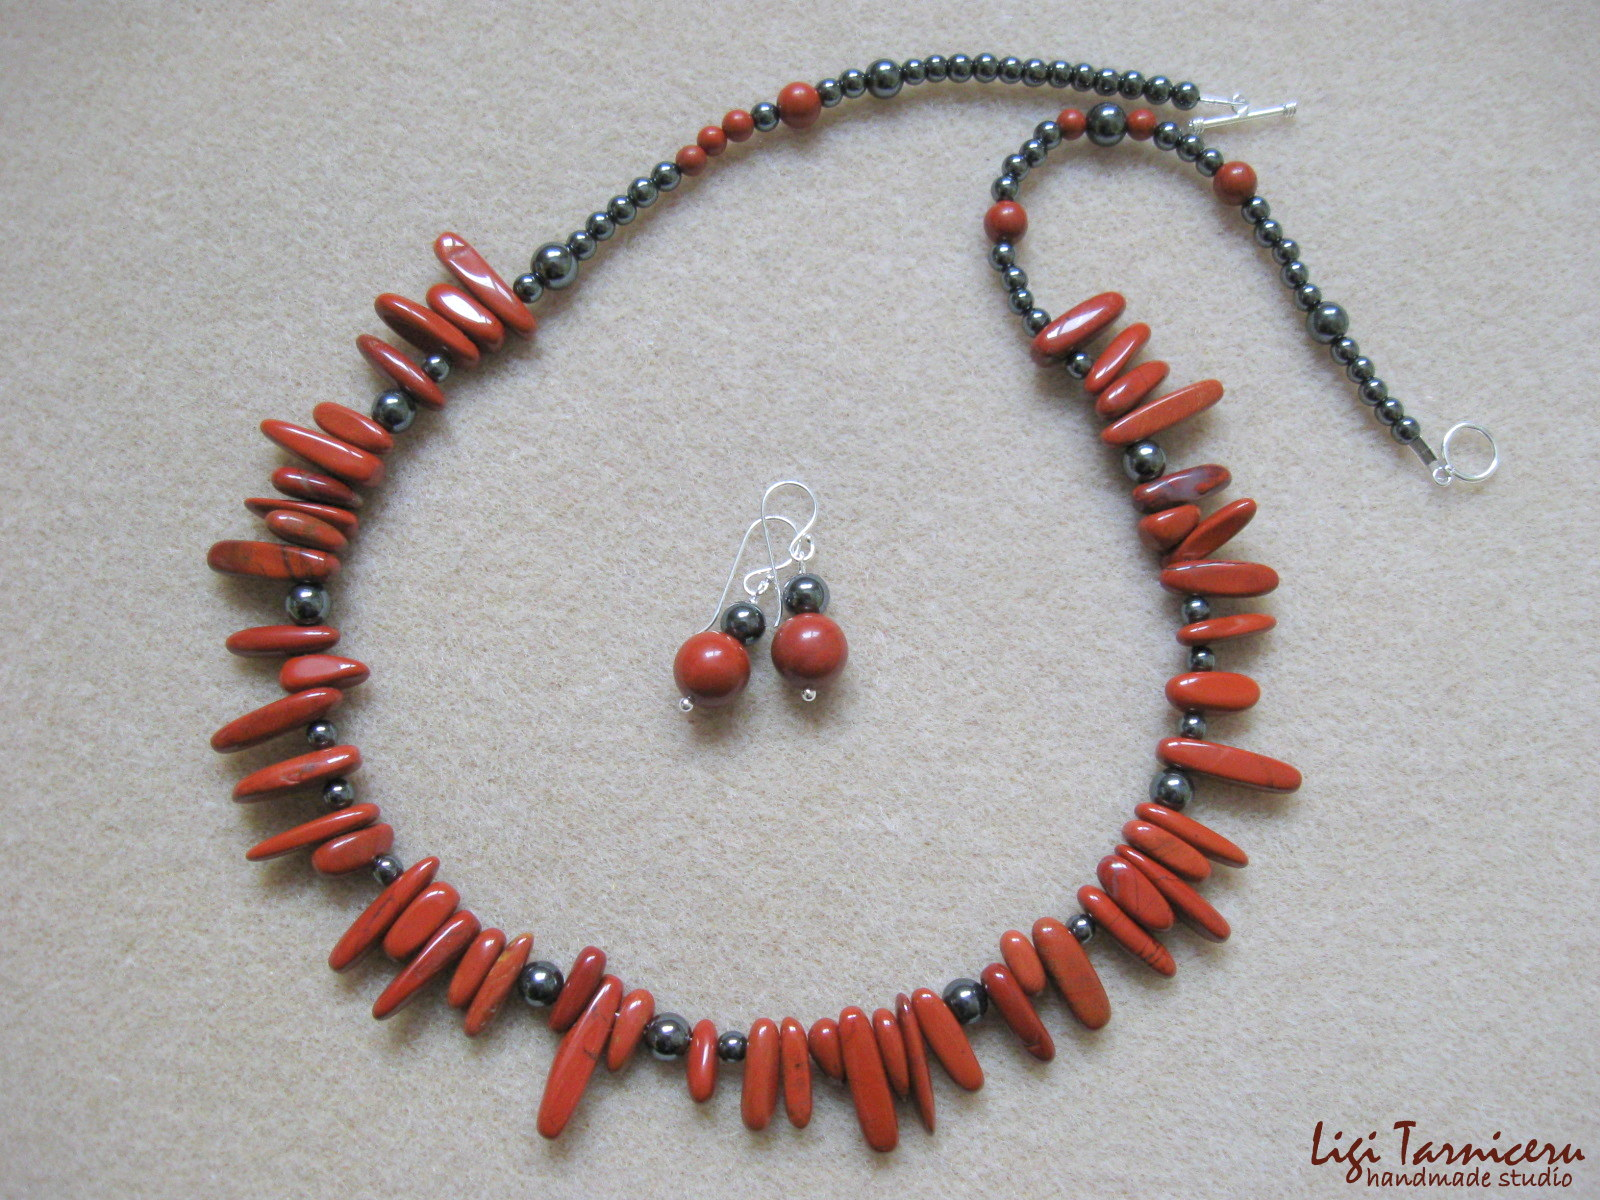 Red jasper, hematite and sterling silver - necklace and earrings set